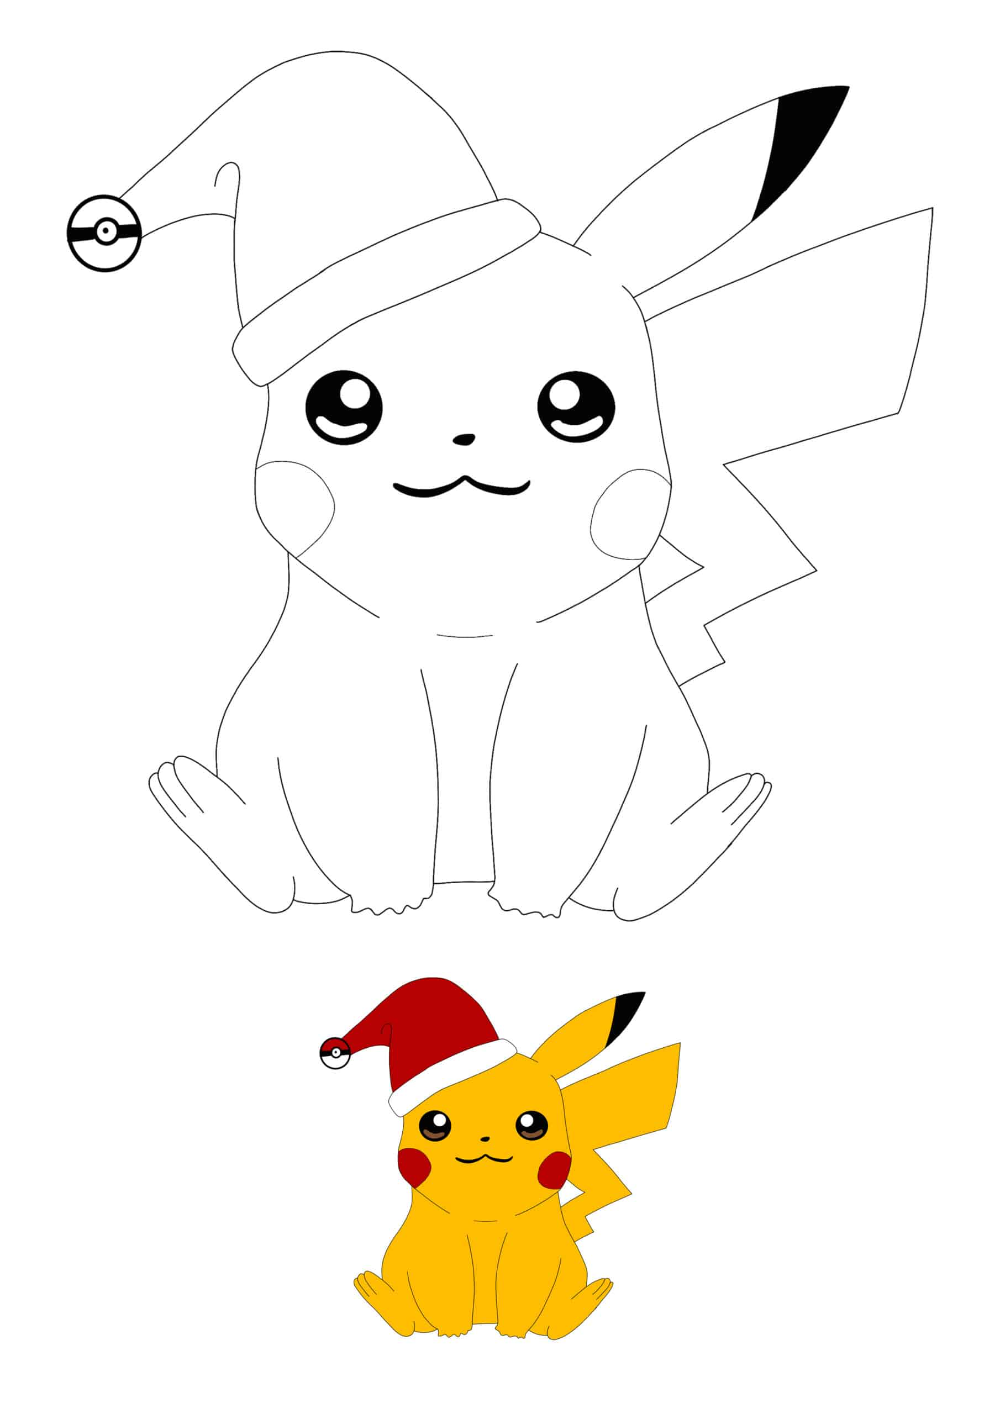 Christmas Pikachu Coloring Pages 2 Free Coloring Sheets 2020 Pikachu Coloring Page Coloring Pages Pokemon Coloring Pages